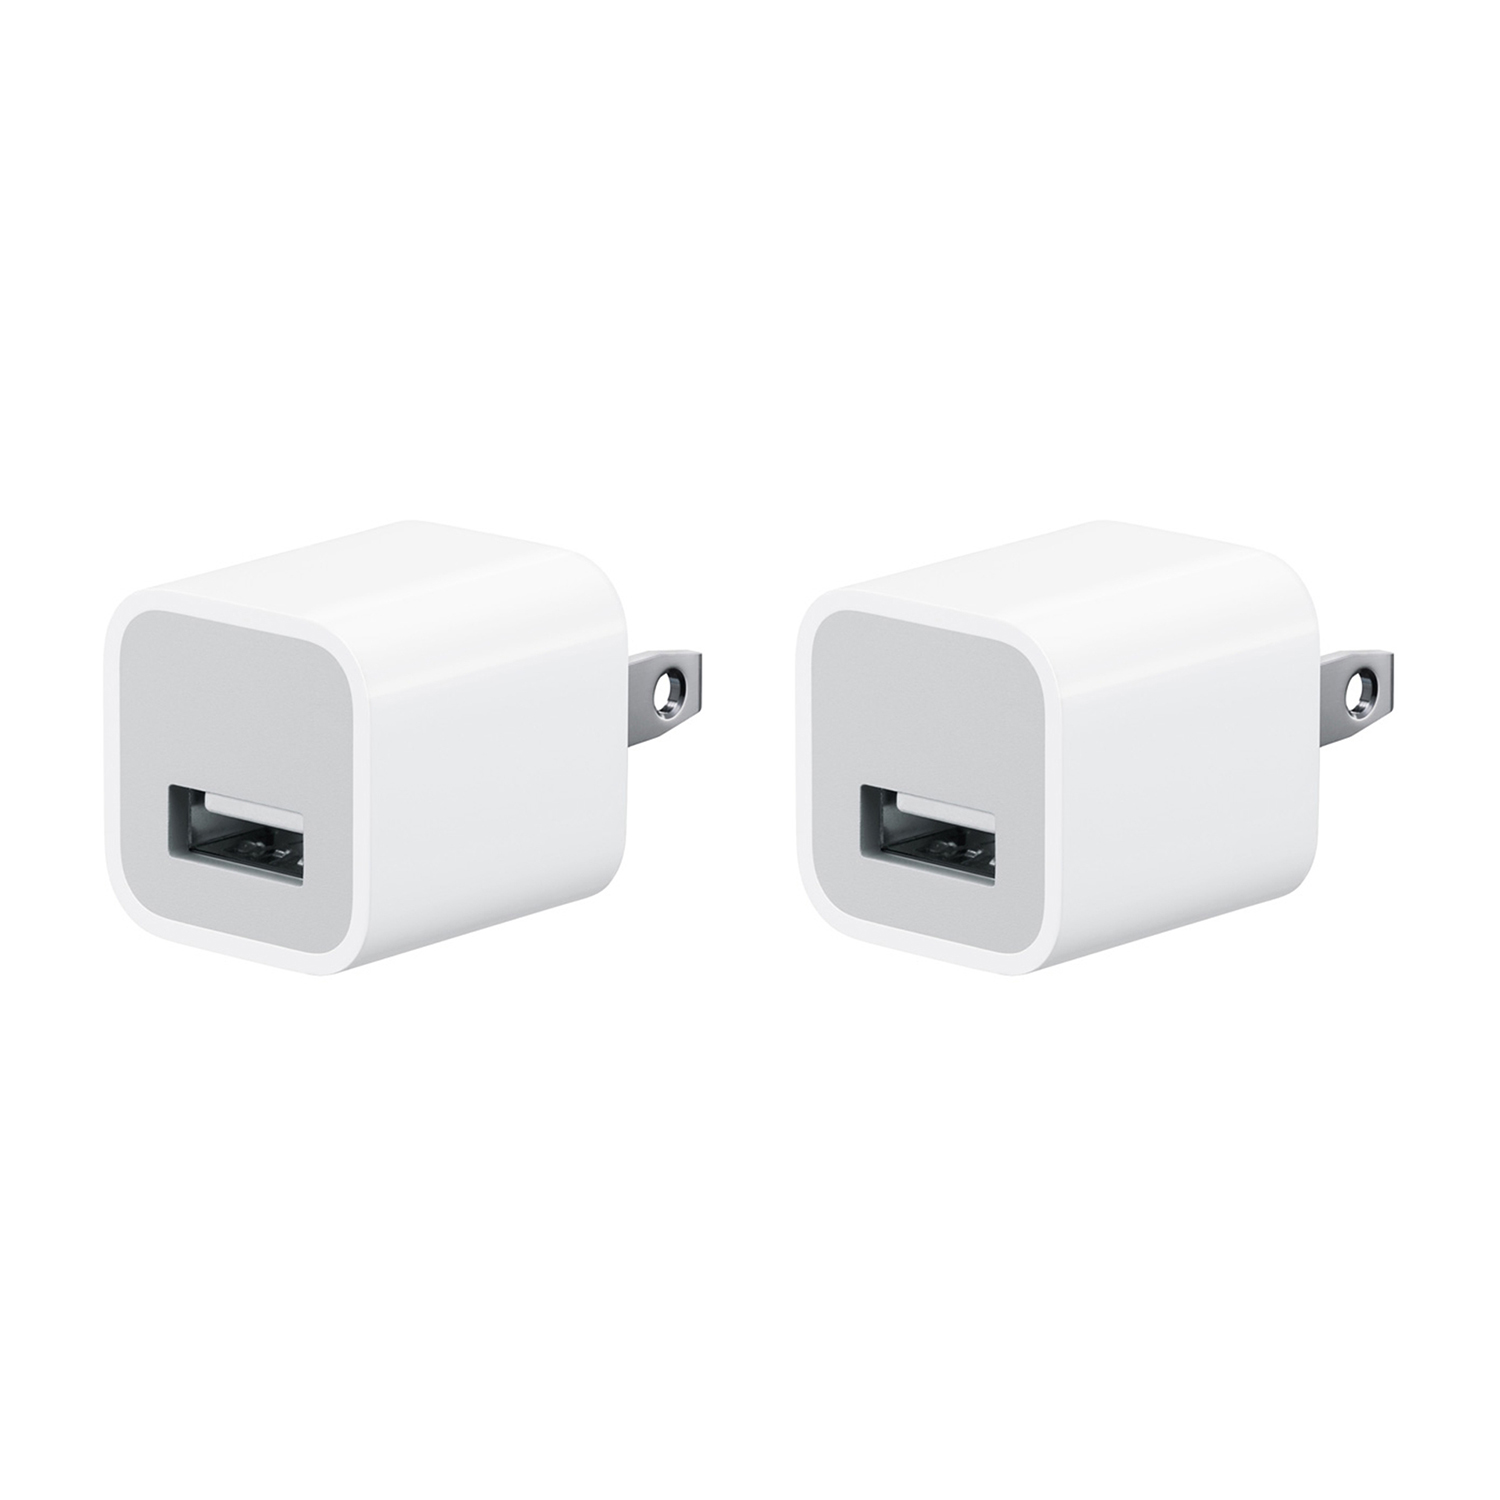 apple usb charger. 2 pack apple oem authentic iphone \u0026 ipad travel usb wall charger usb b